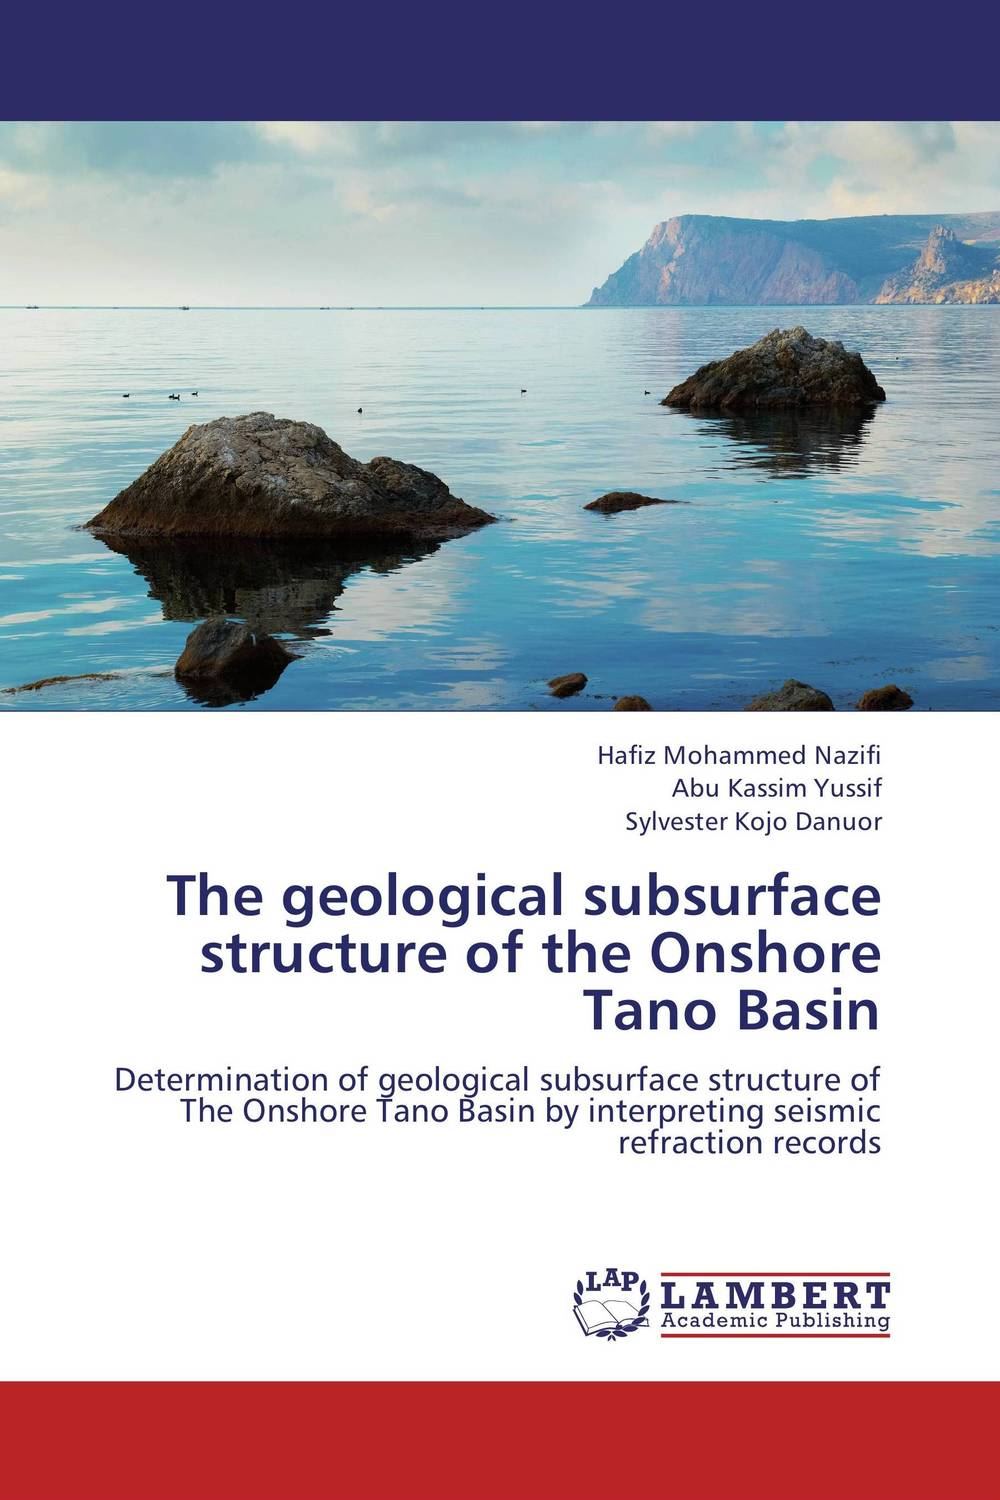 The geological subsurface structure of the Onshore Tano Basin alon dadon imaging spectroscopy from space applied for geological mapping